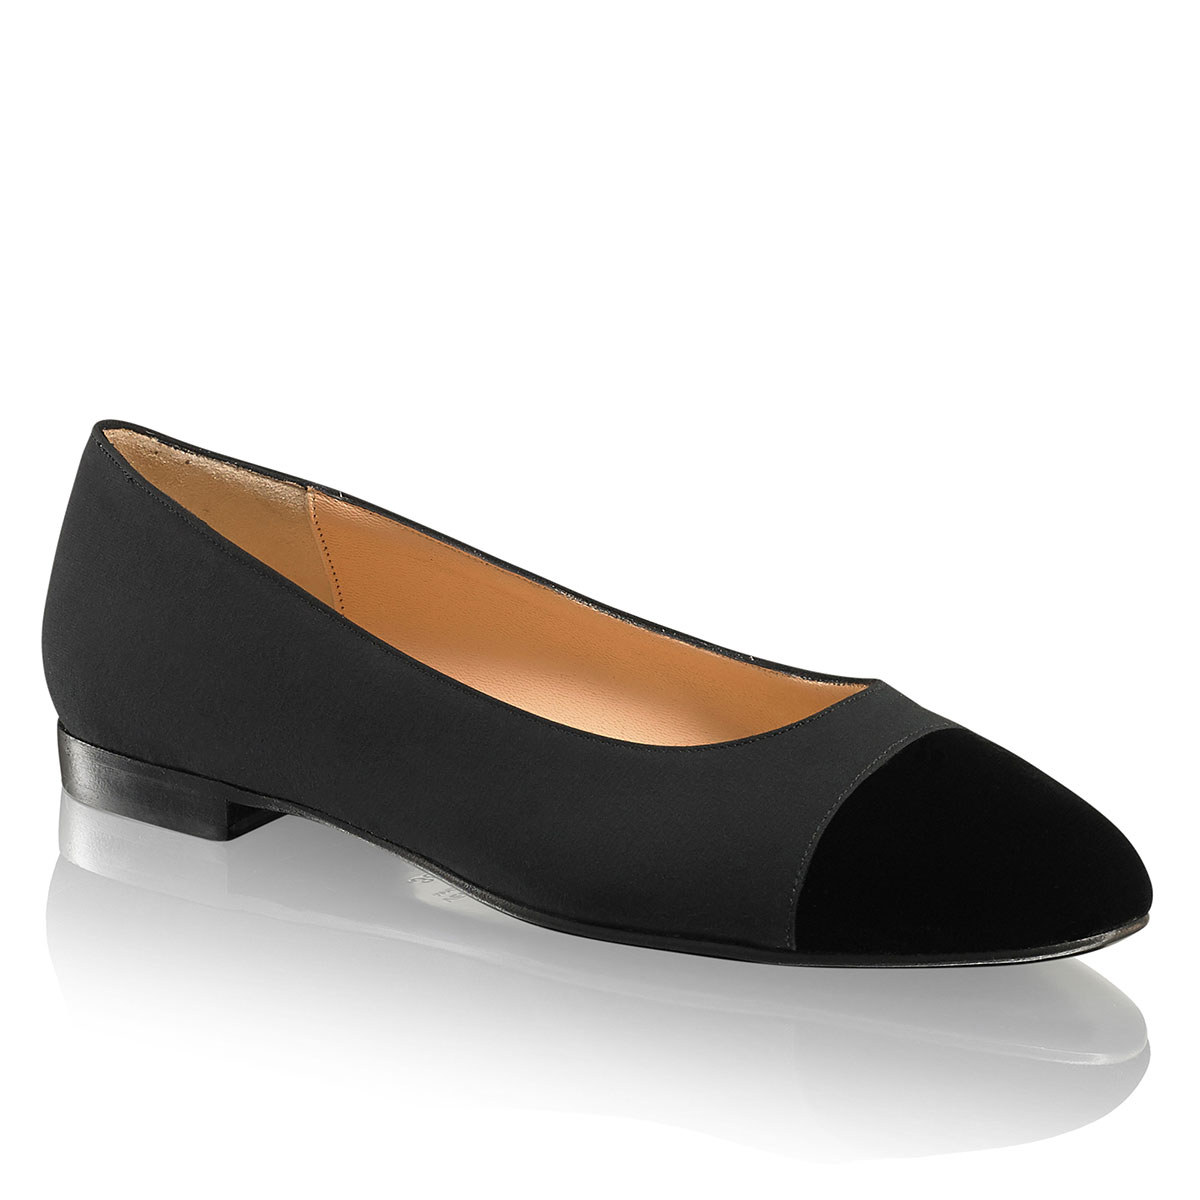 Russell And Bromley JEANIE Toe-Cap Flat